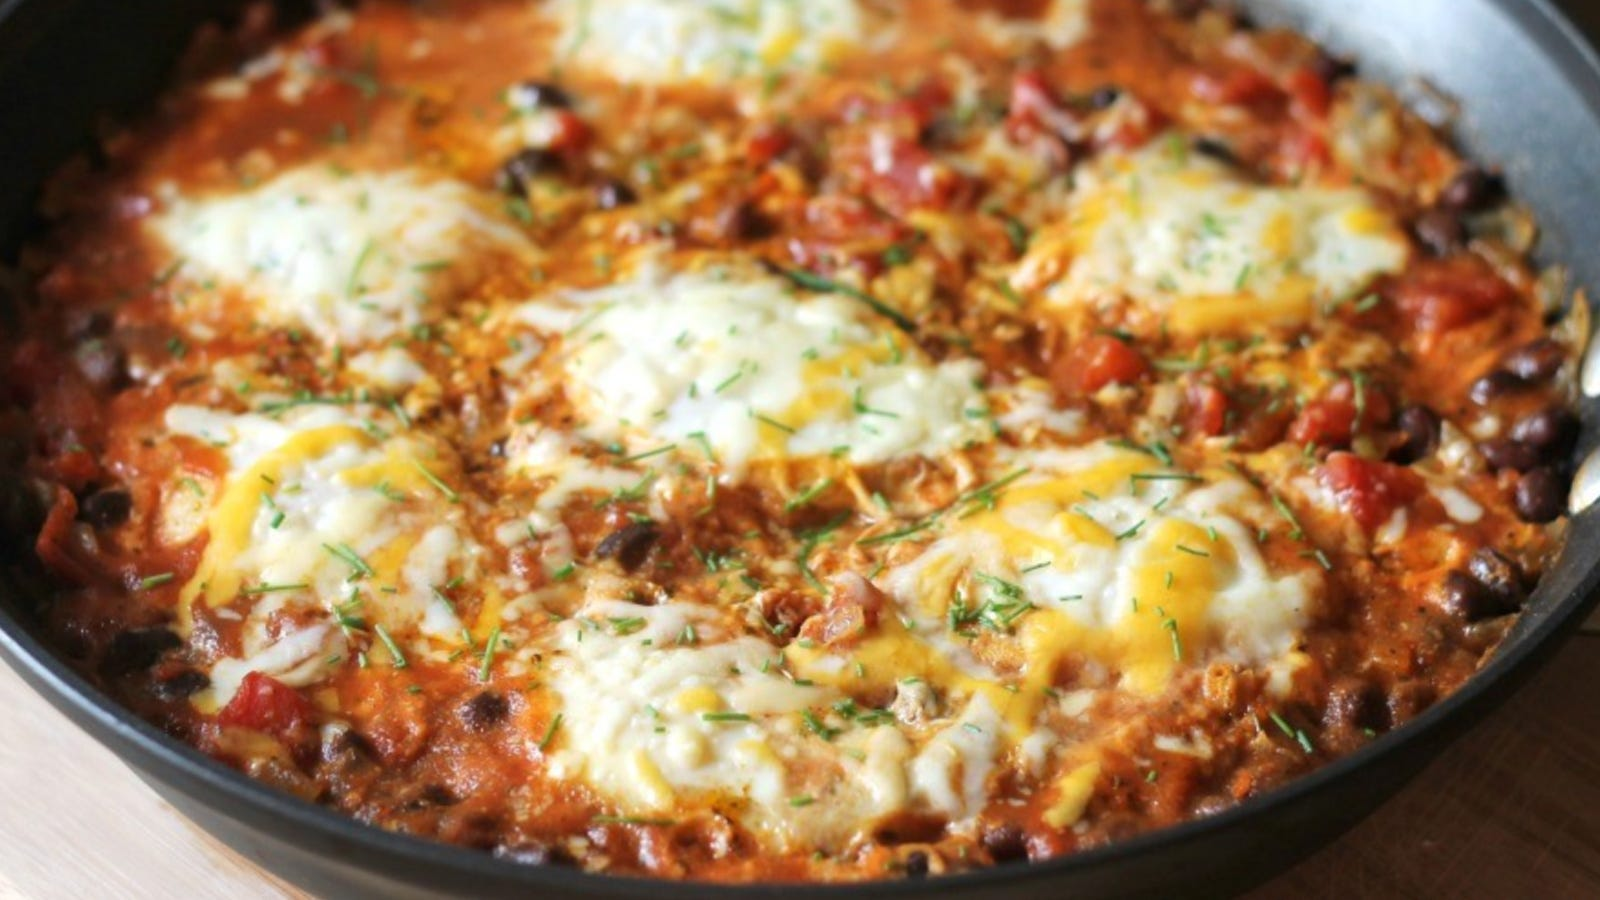 A large skillet filled with Mexican baked eggs topped with melted cheese.